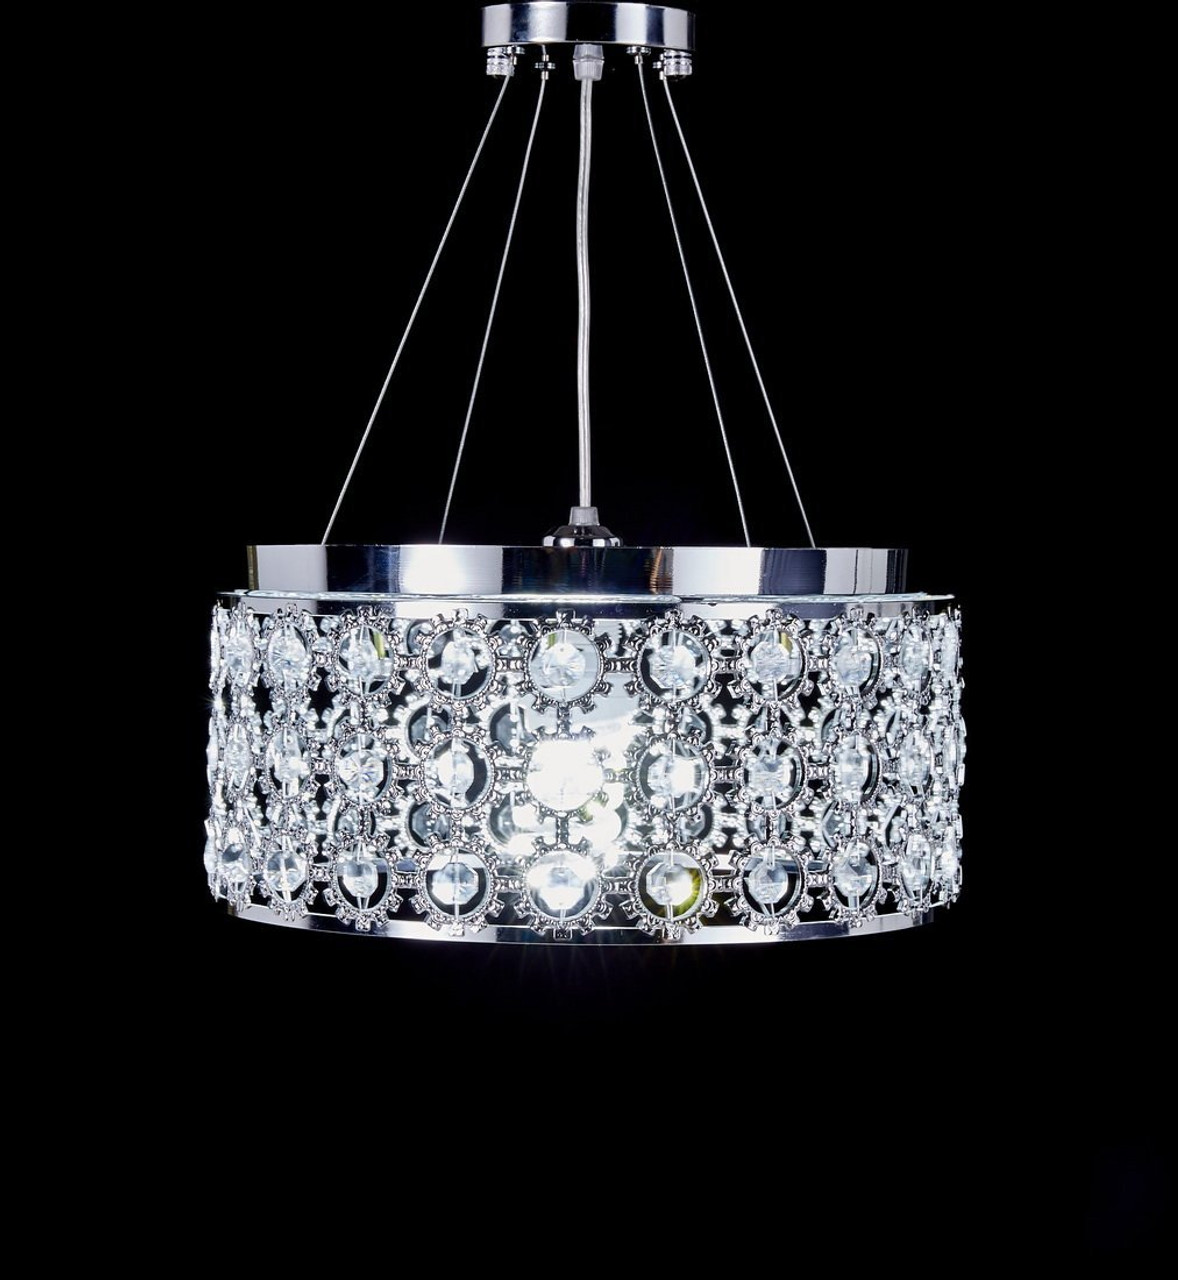 regarding lamp luxury stylish crystal chandelier residence household pendant prepare present modern home hanging with for fixtures to spiral incredible lighting regard